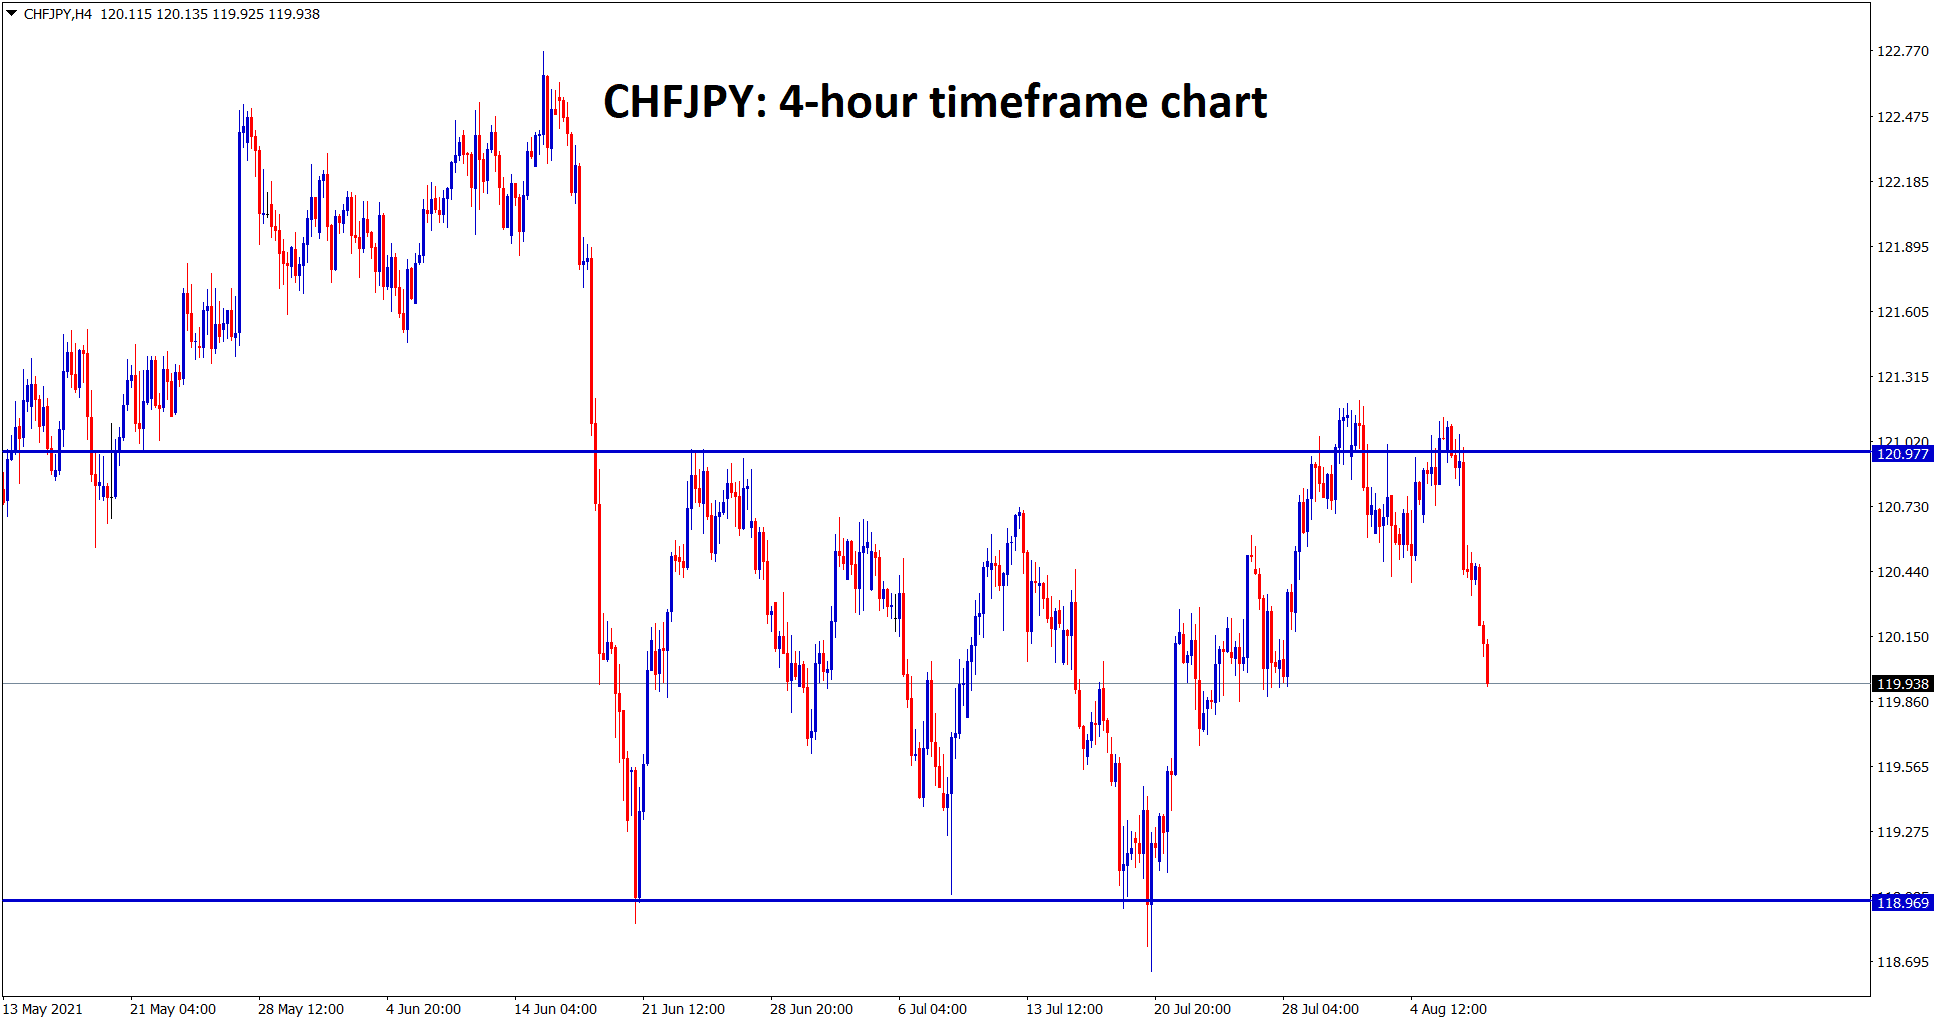 CHFJPY is falling harder from the resistance zone